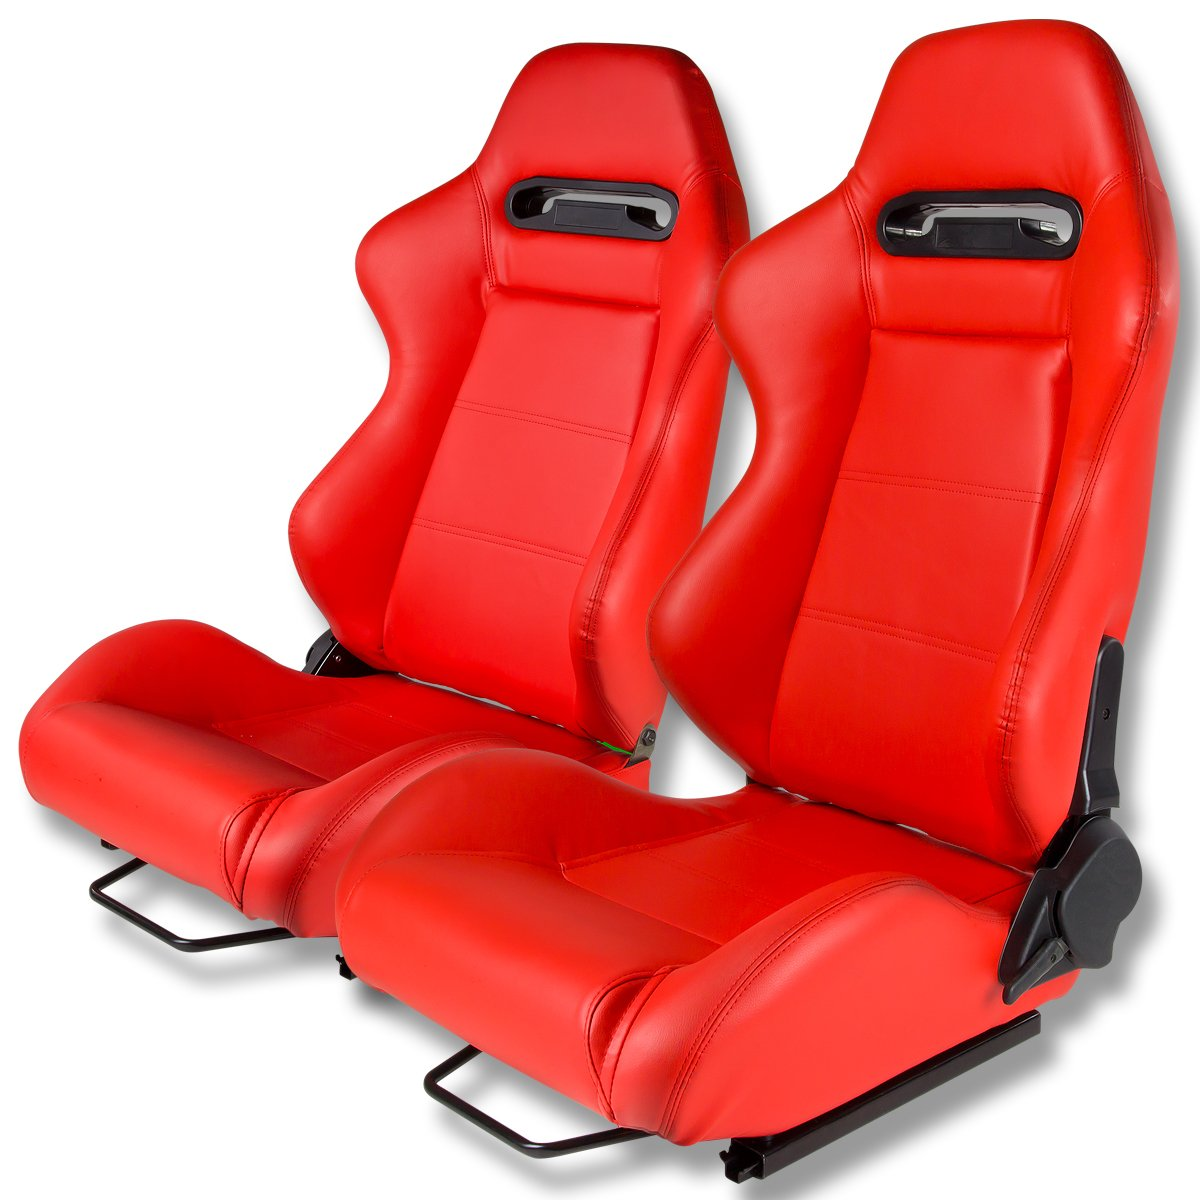 Type-R Style Red Faux Leather Reclinable Sport Racing Seats With Red Stitch Set of 2